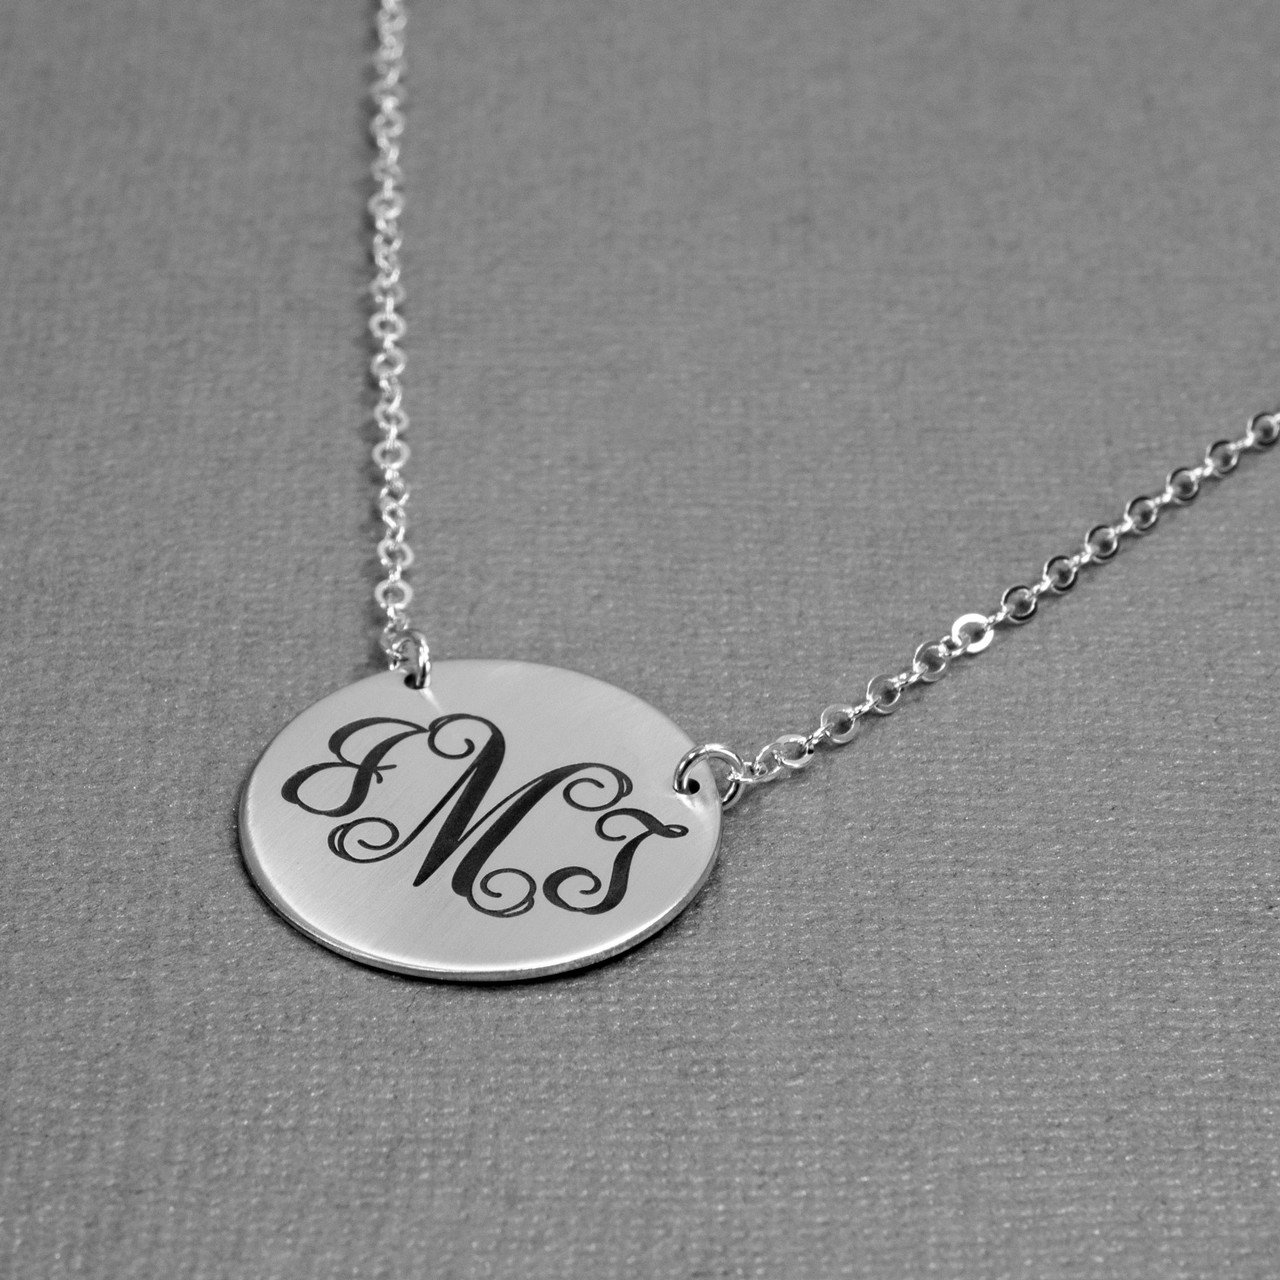 Silver monogram necklace, shown from side